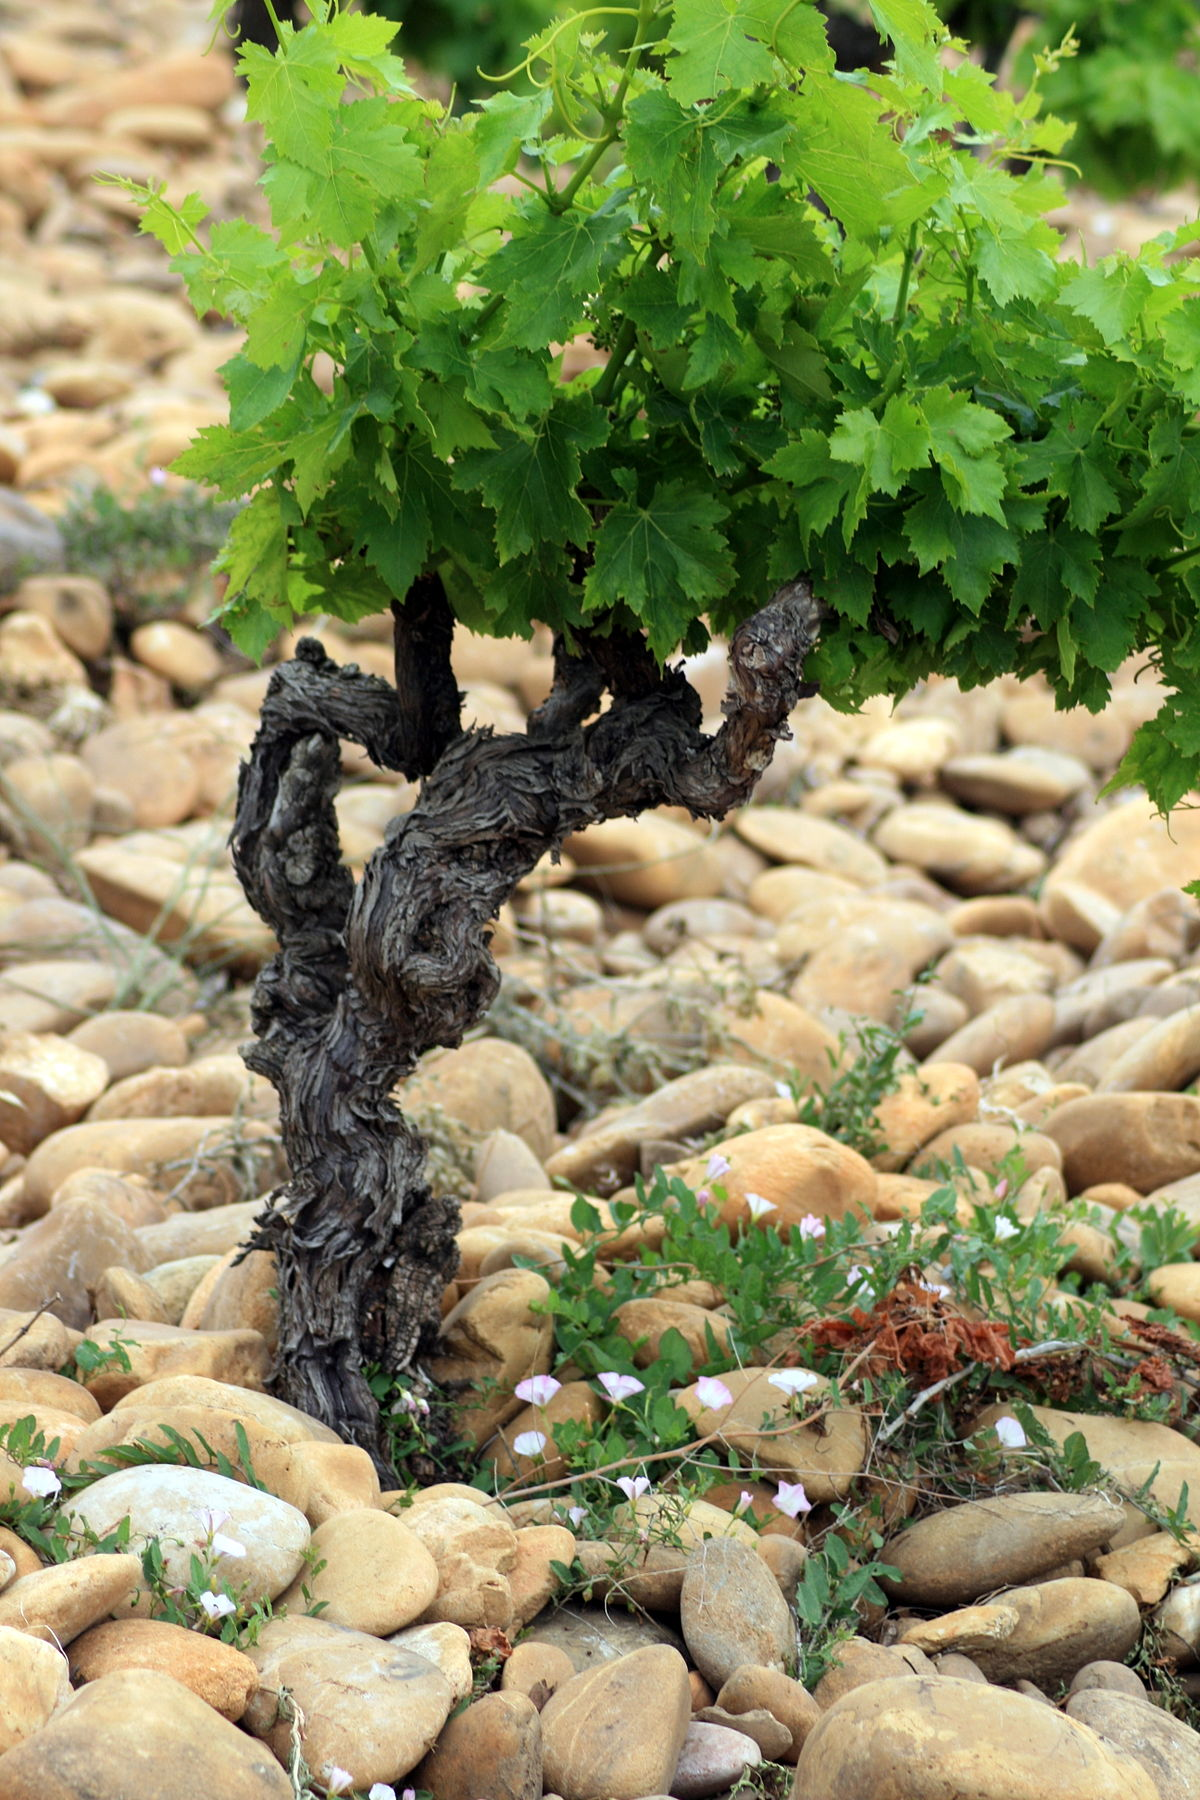 Chateauneuf-du-Pape galets